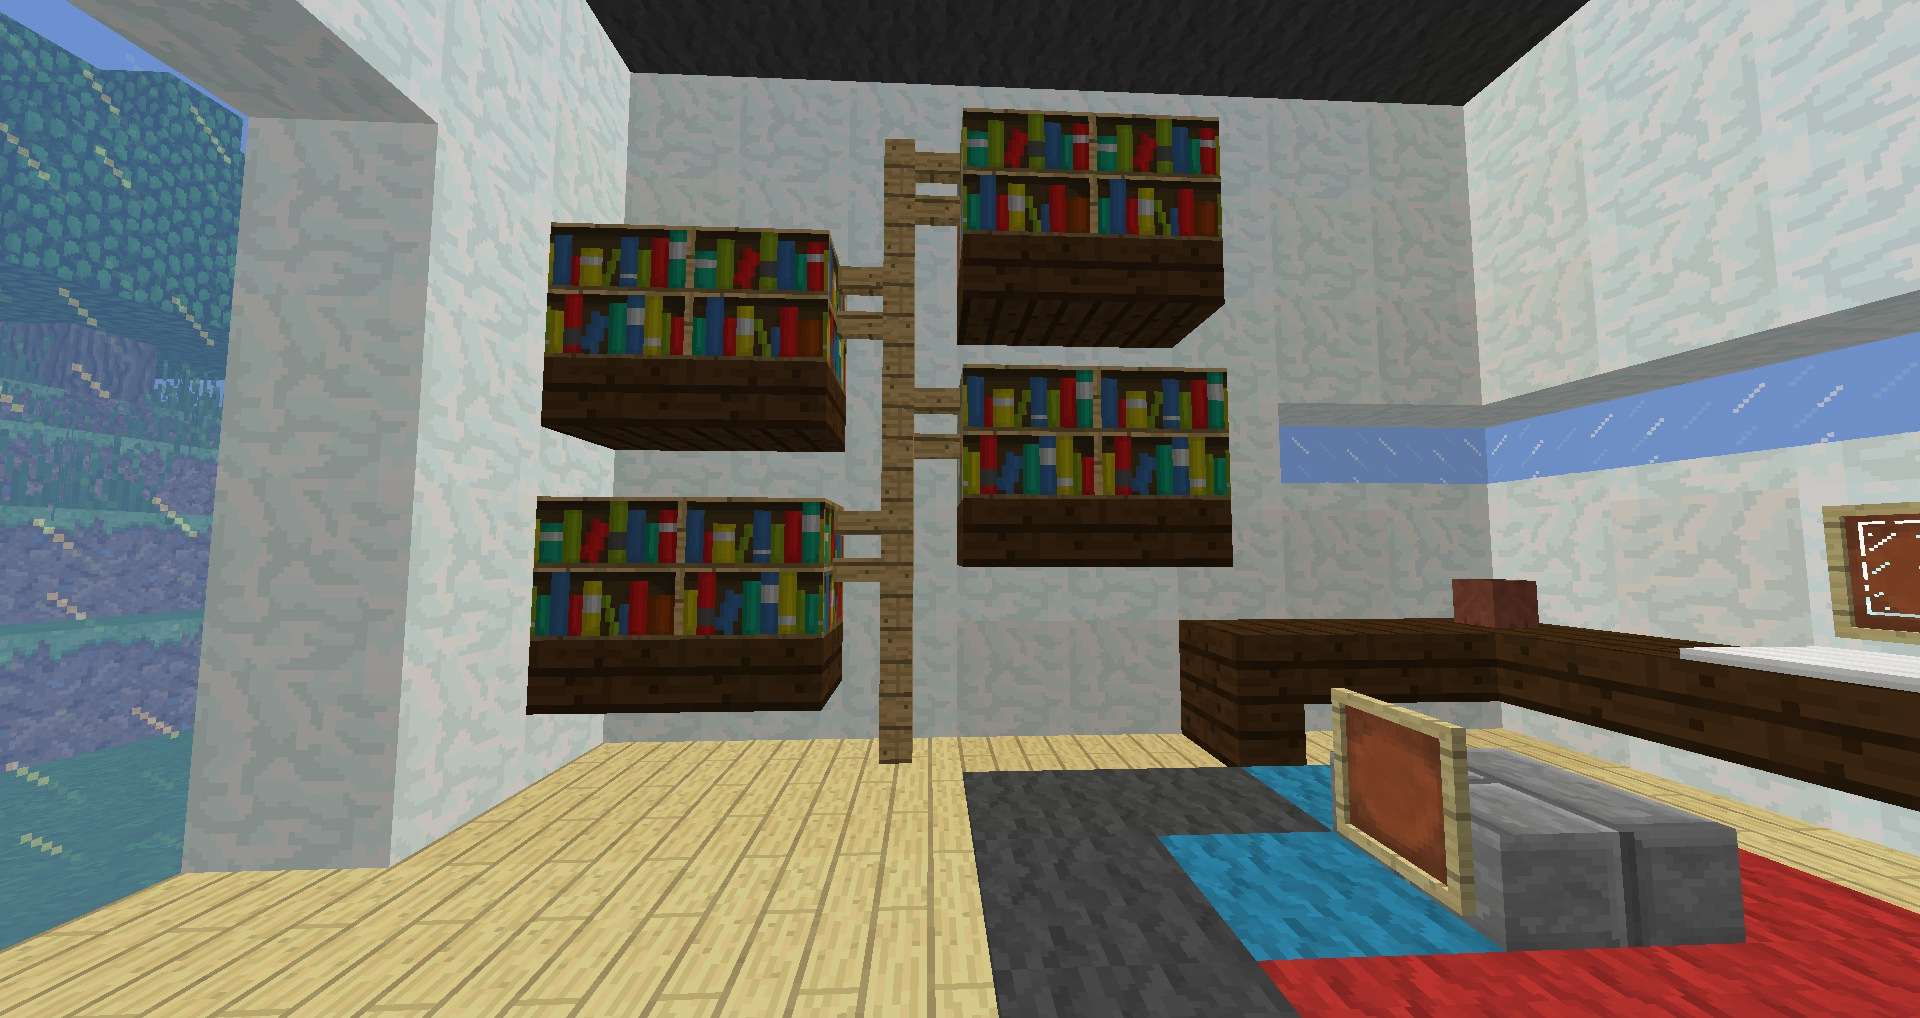 Wall Bookcase Minecraft